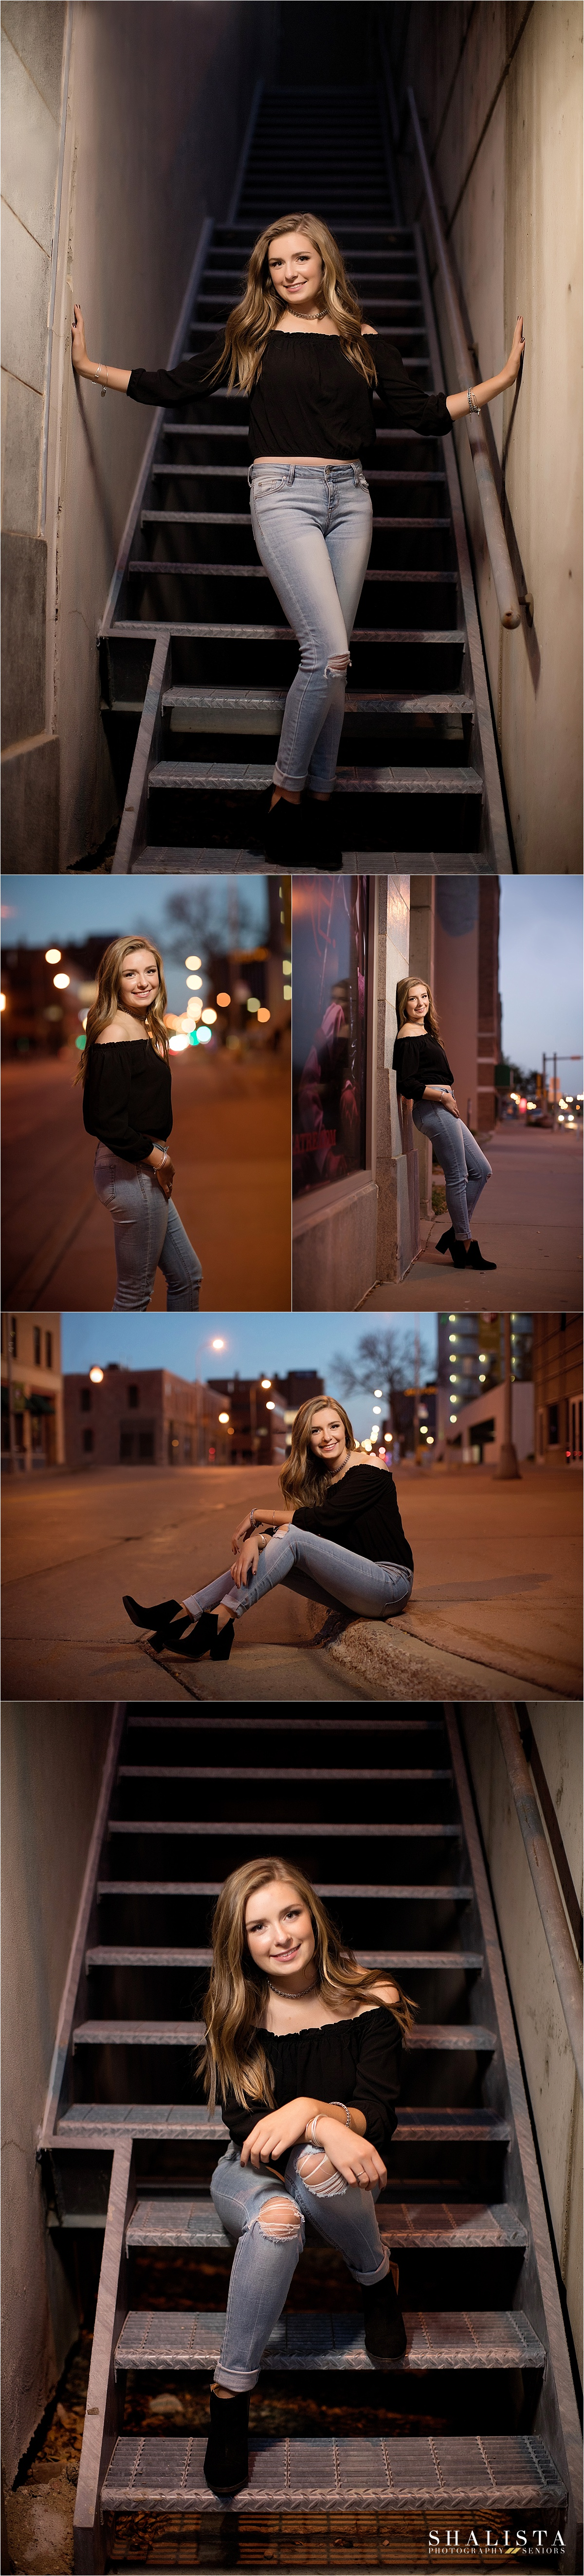 Sioux Falls After Dark Portraits